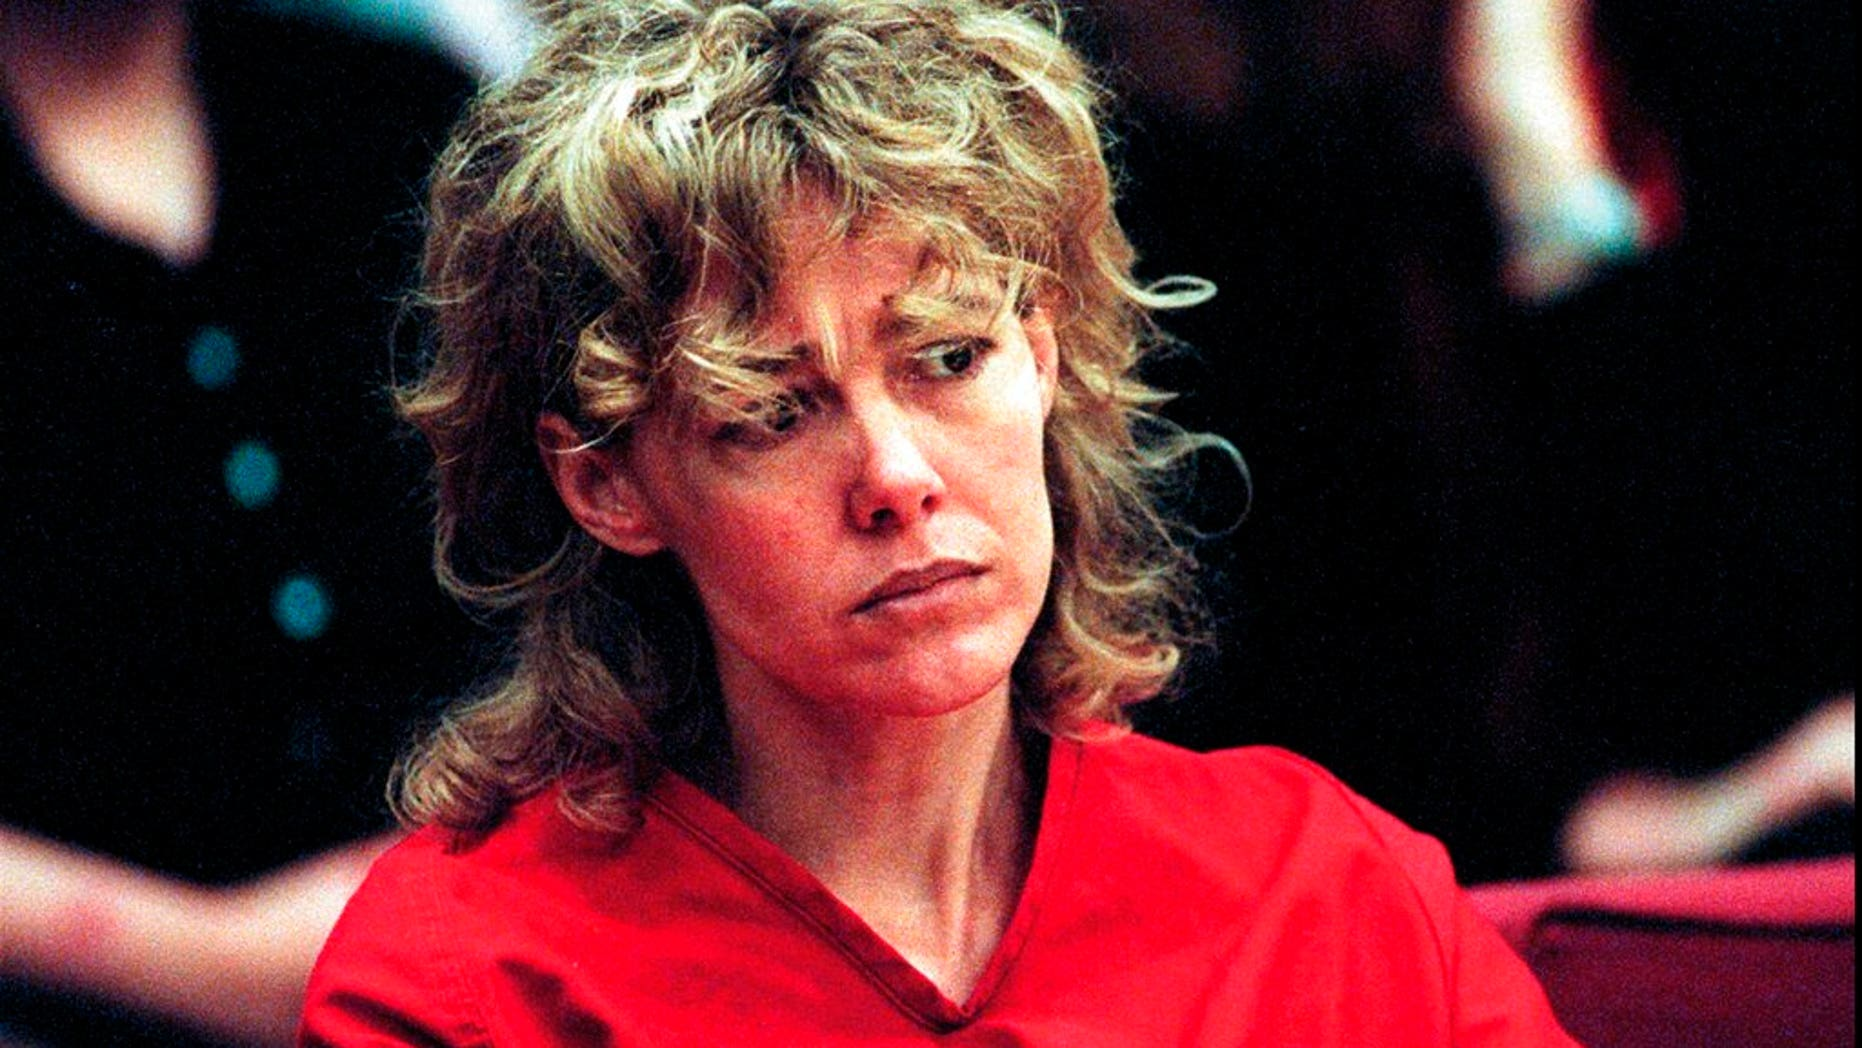 Mary Kay Letourneau, who was convicted of raping 13-year-old student, dead at 58